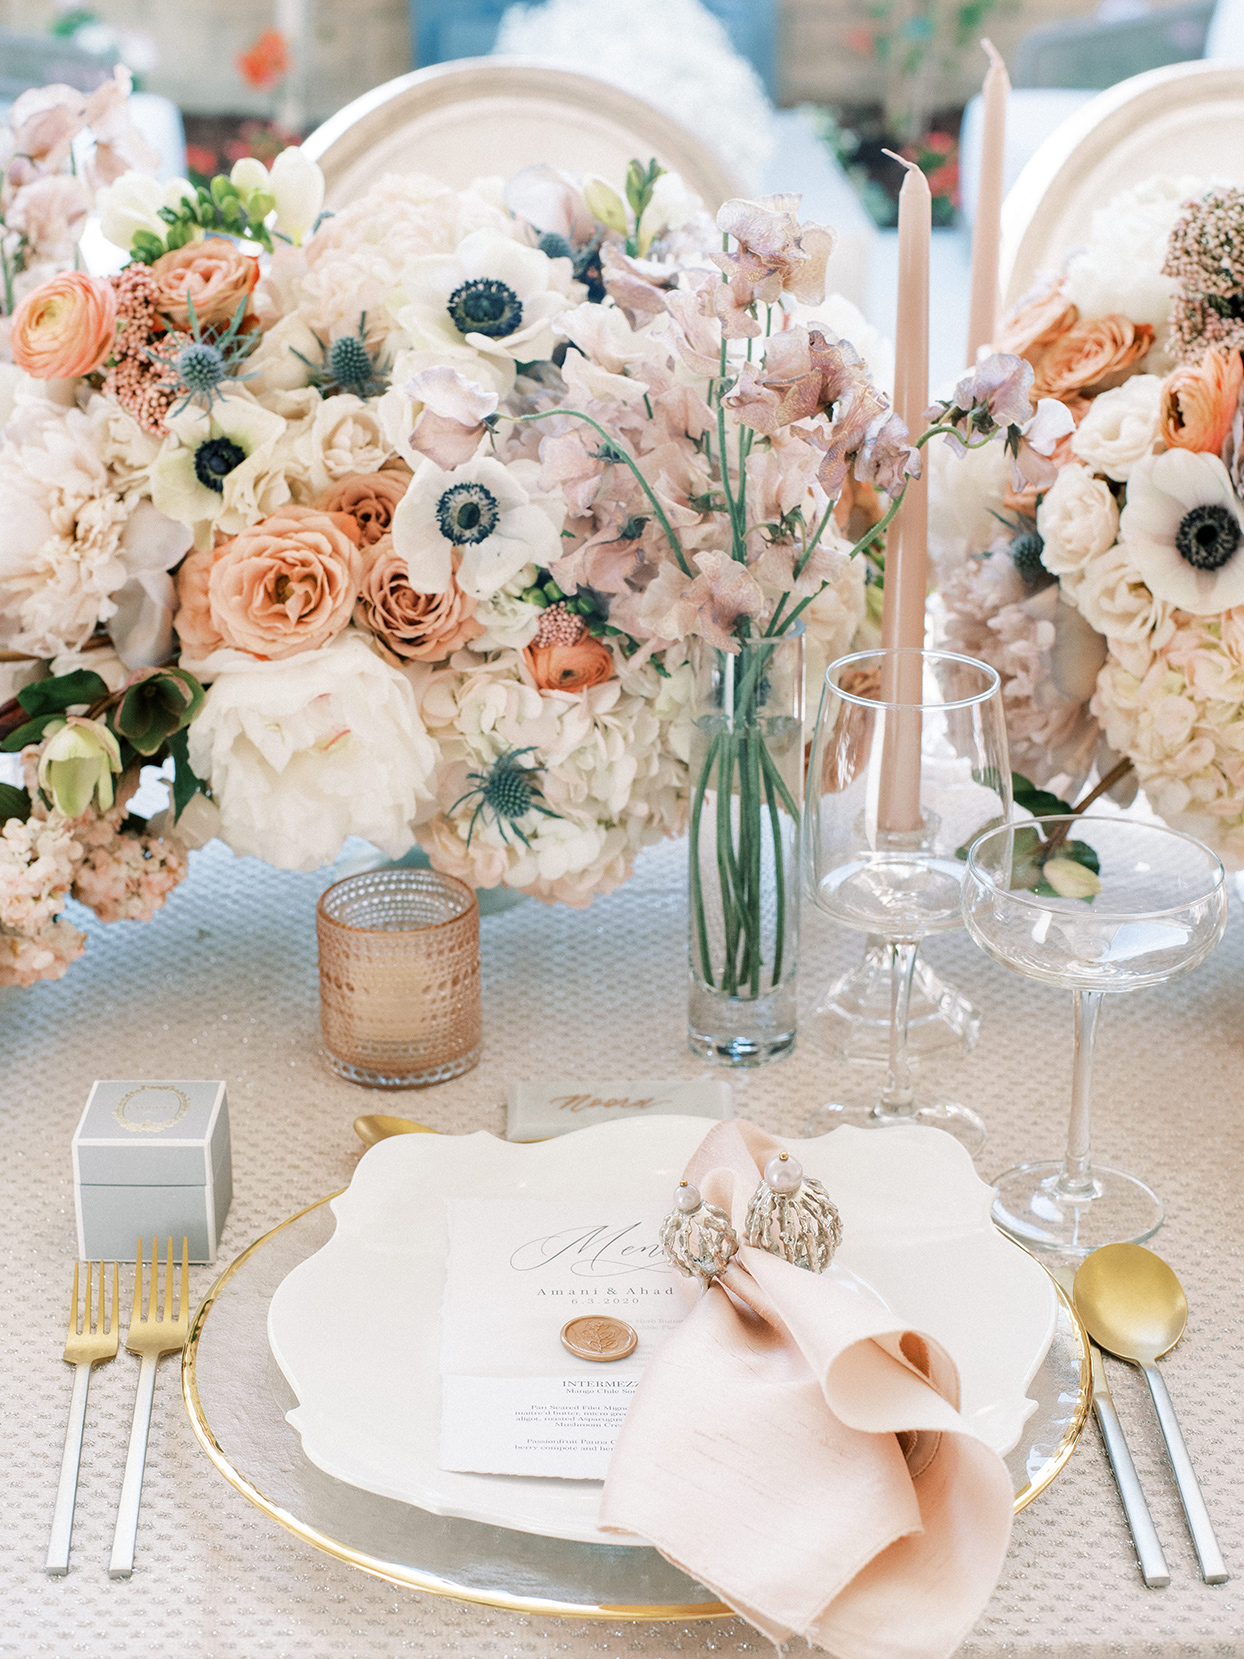 white and gold wedding place settings